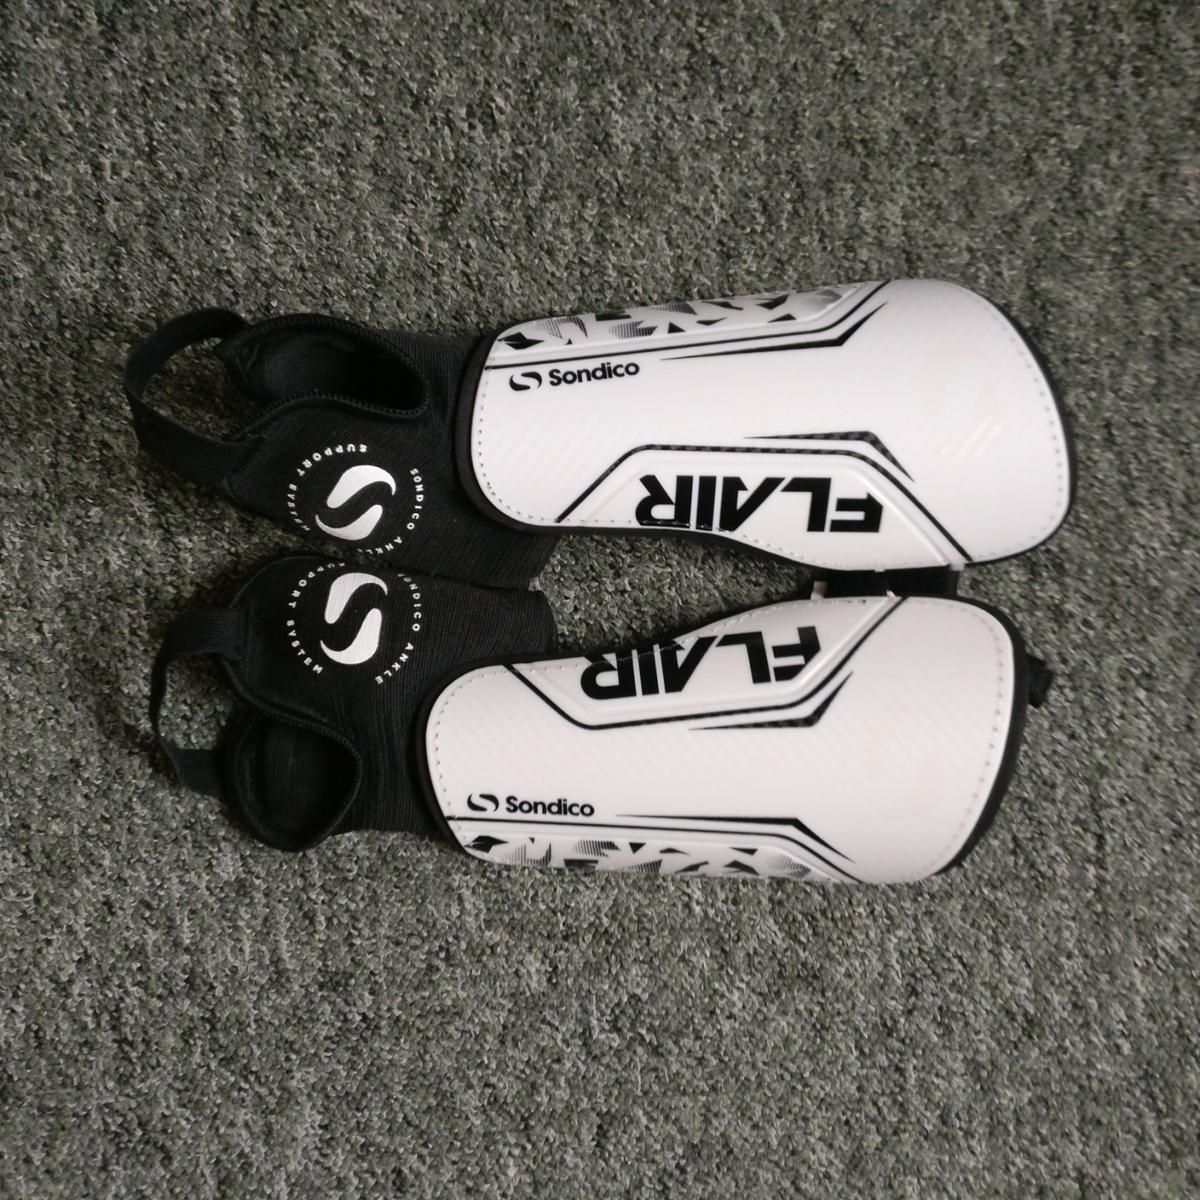 Nike Tiempo football shoes and free shin pads. Very good condition! Size 10 UK.  Used only twice. Amazing football shoes! Will turn any amateur player into a pro! Real bargain.  If you have any questions, let me know :)